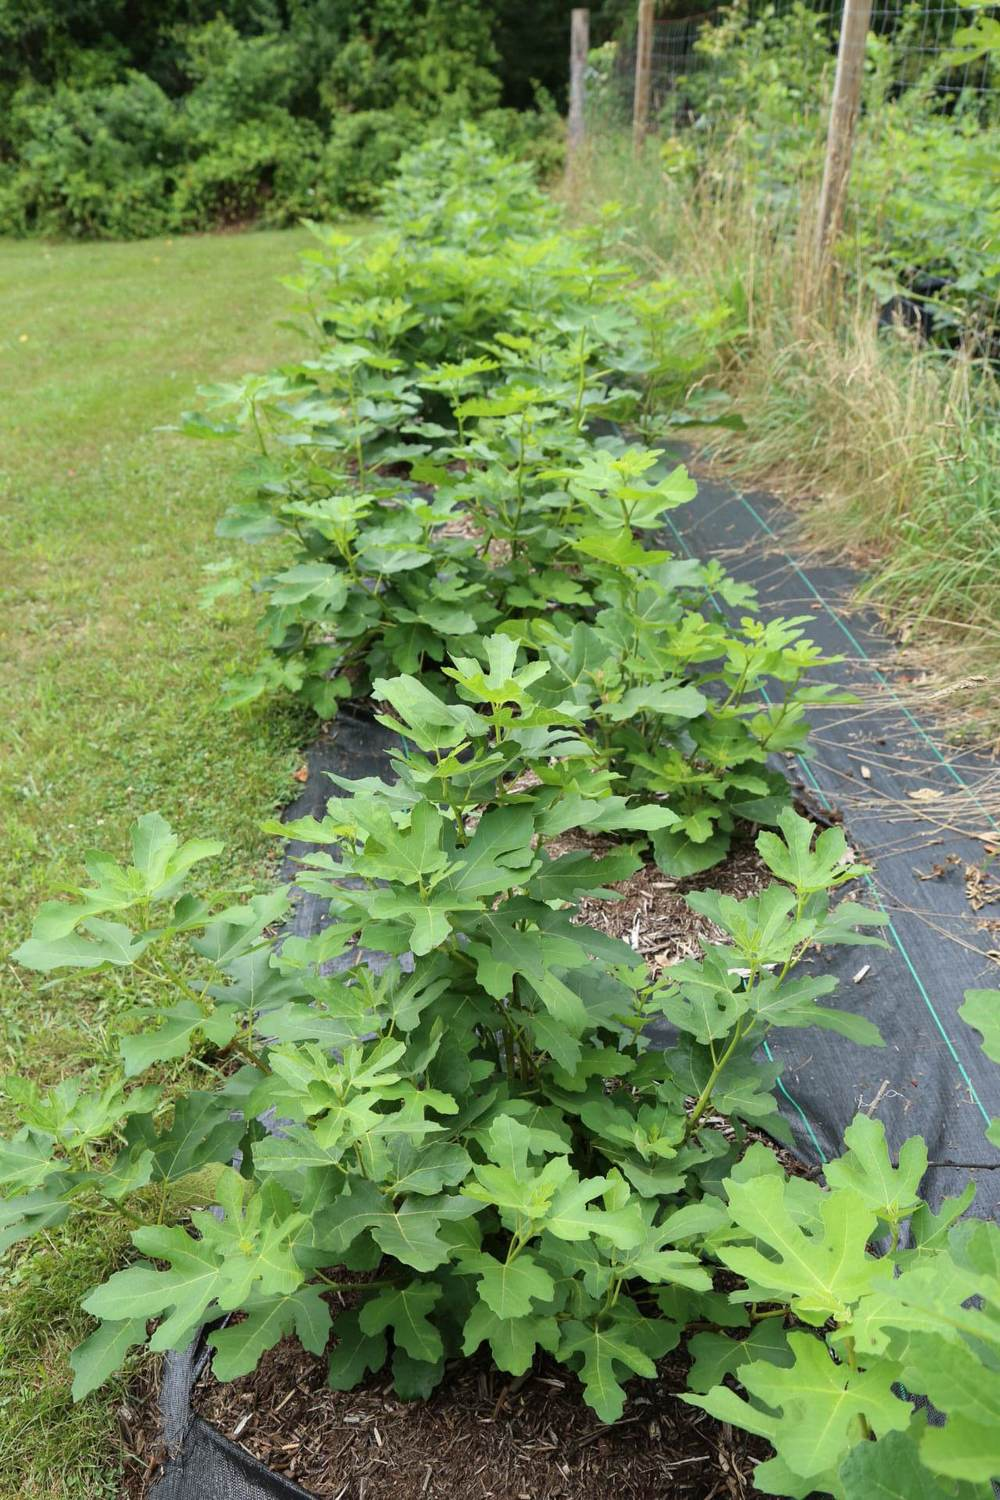 A row of figs on drip irrigation